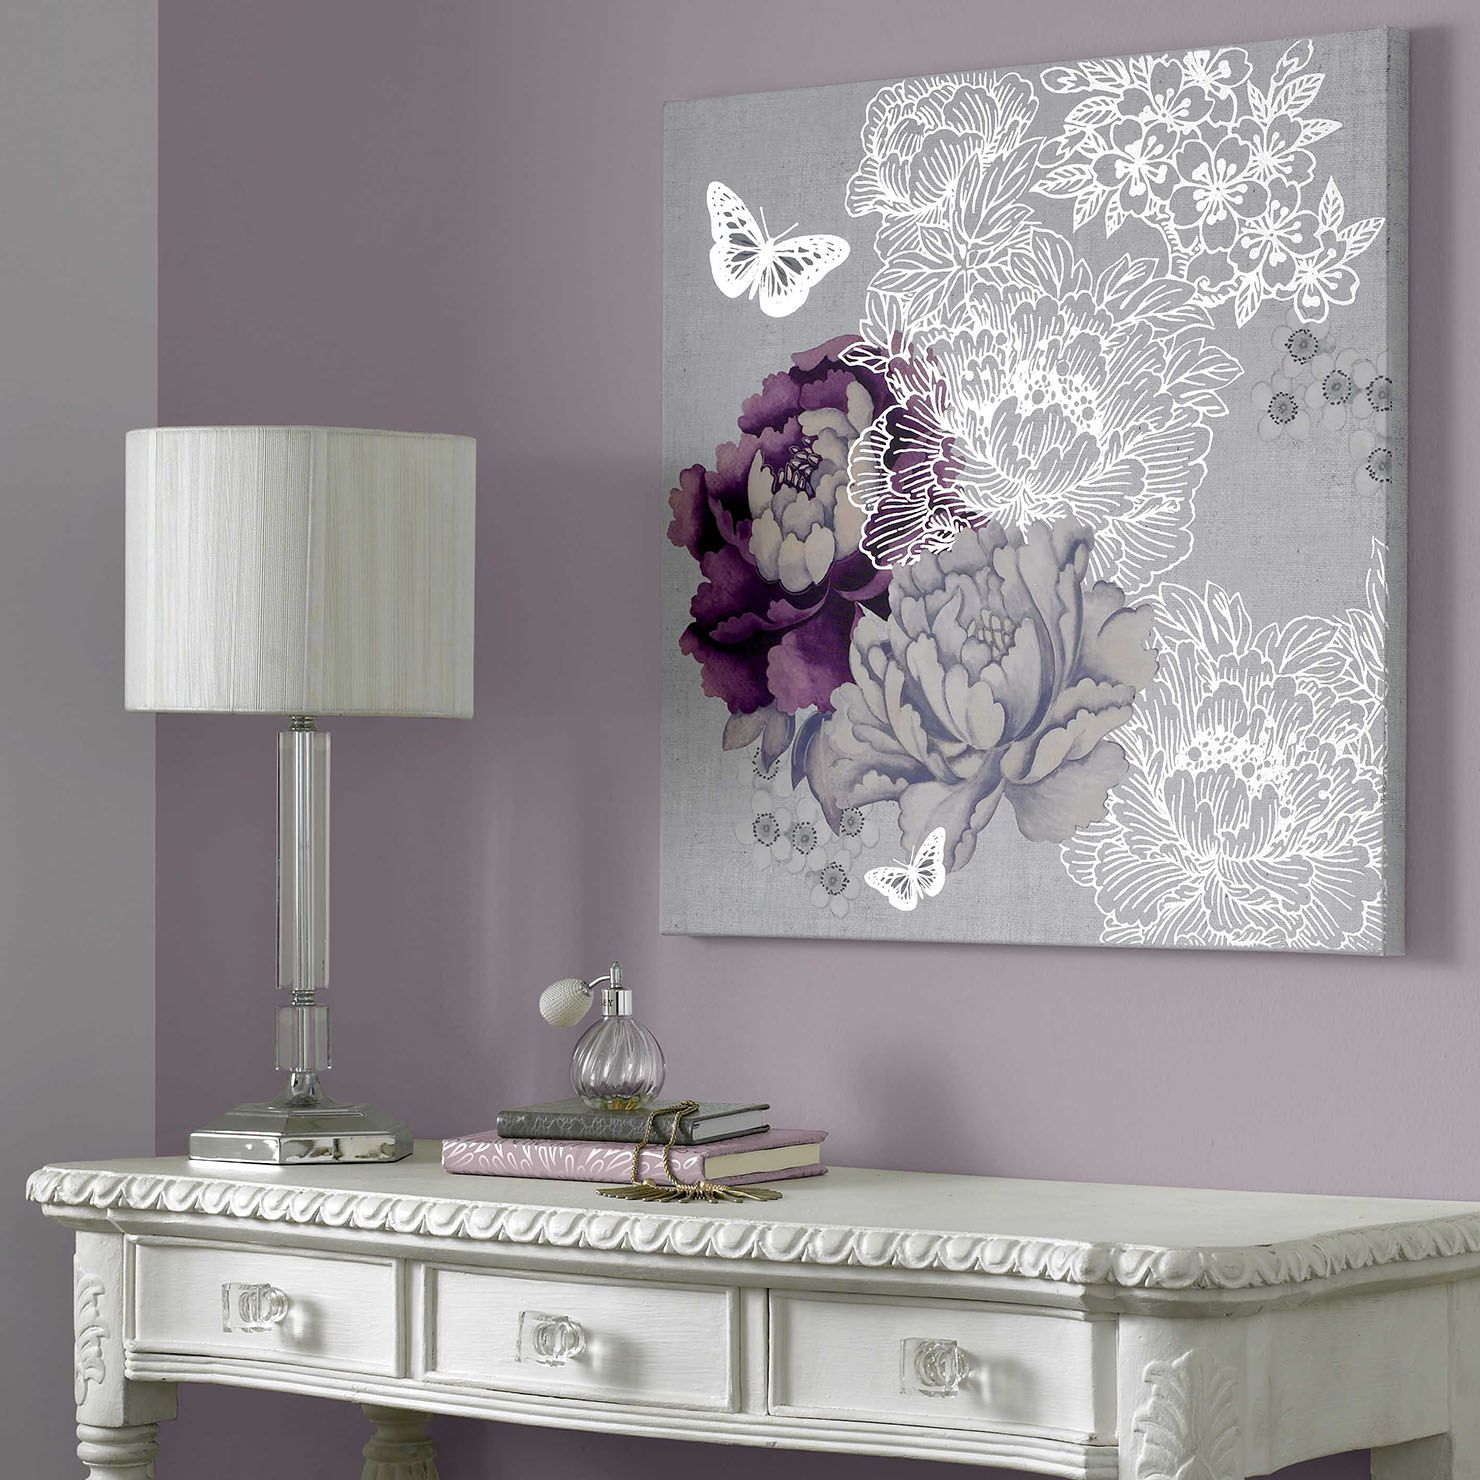 Bedroom Black Metal Lilac Bedroom Curtains White Lace Bedroom Curtains Log Cabin Bedroom Decorating Ideas: Floral Metallic, Wall Art, 60x60cm